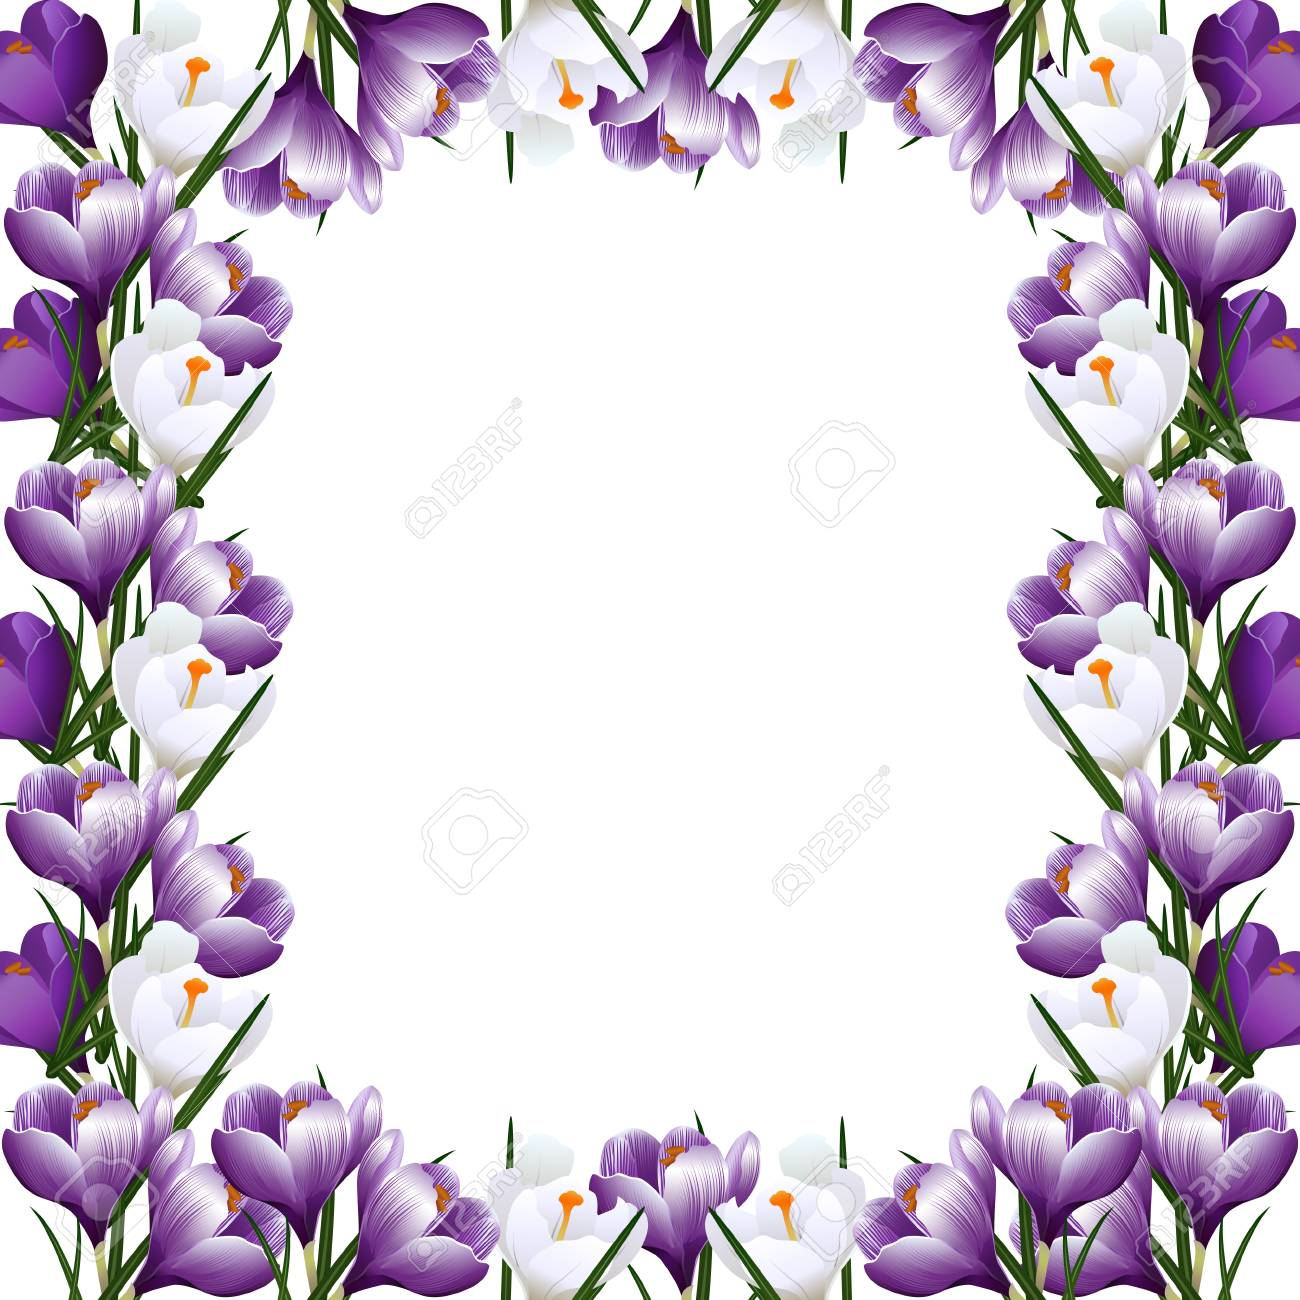 Frame With Purple Flowers Of Crocuses On A White Background Royalty